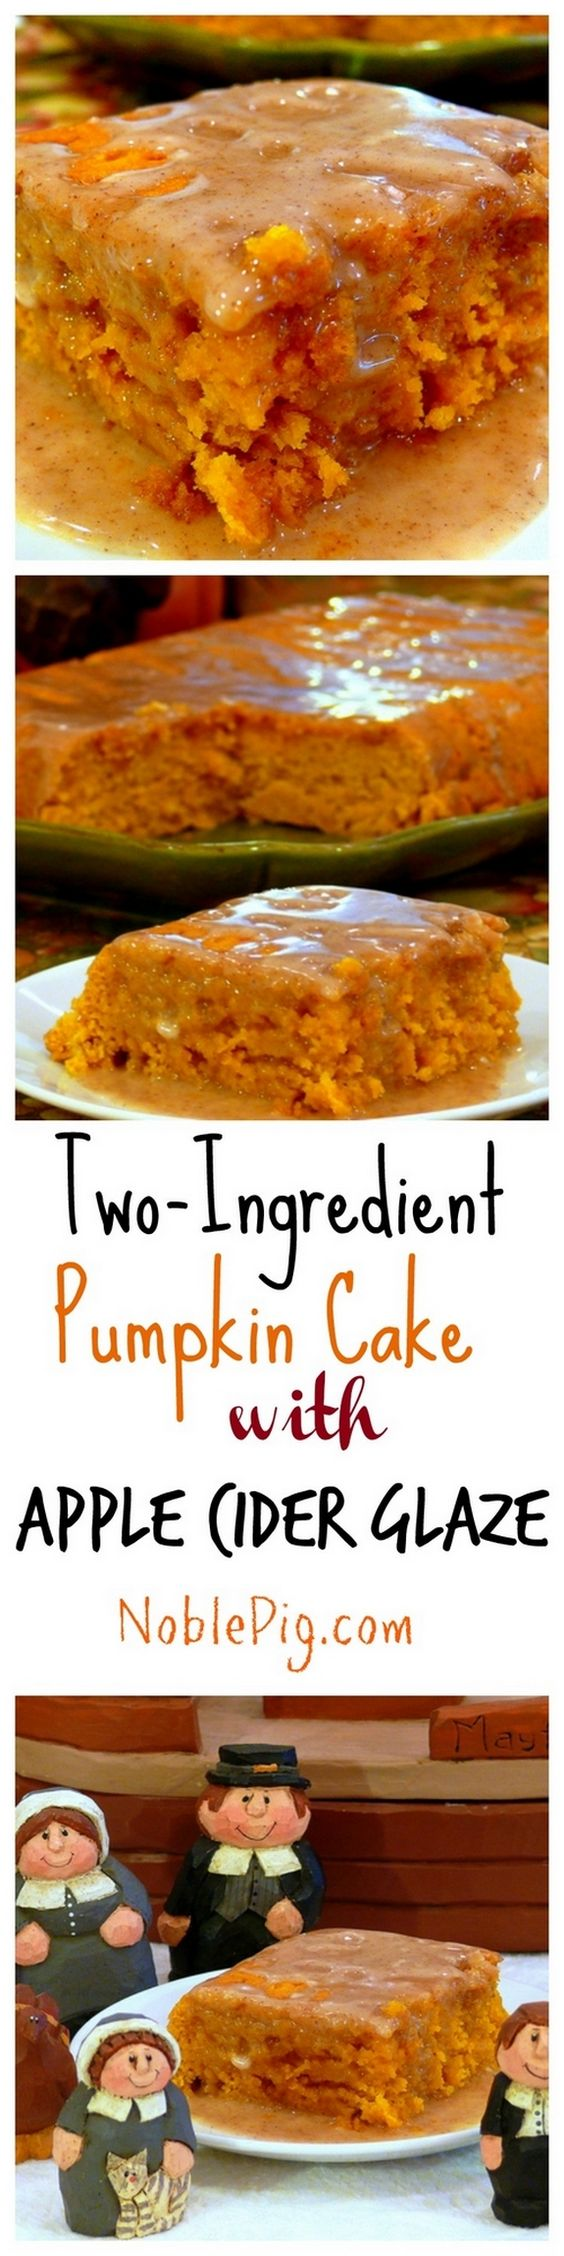 Delicious Thanksgiving Dessert Recipes: Two-Ingredient Pumpkin Cake with Apple Cider Glaze from The Noble Pig